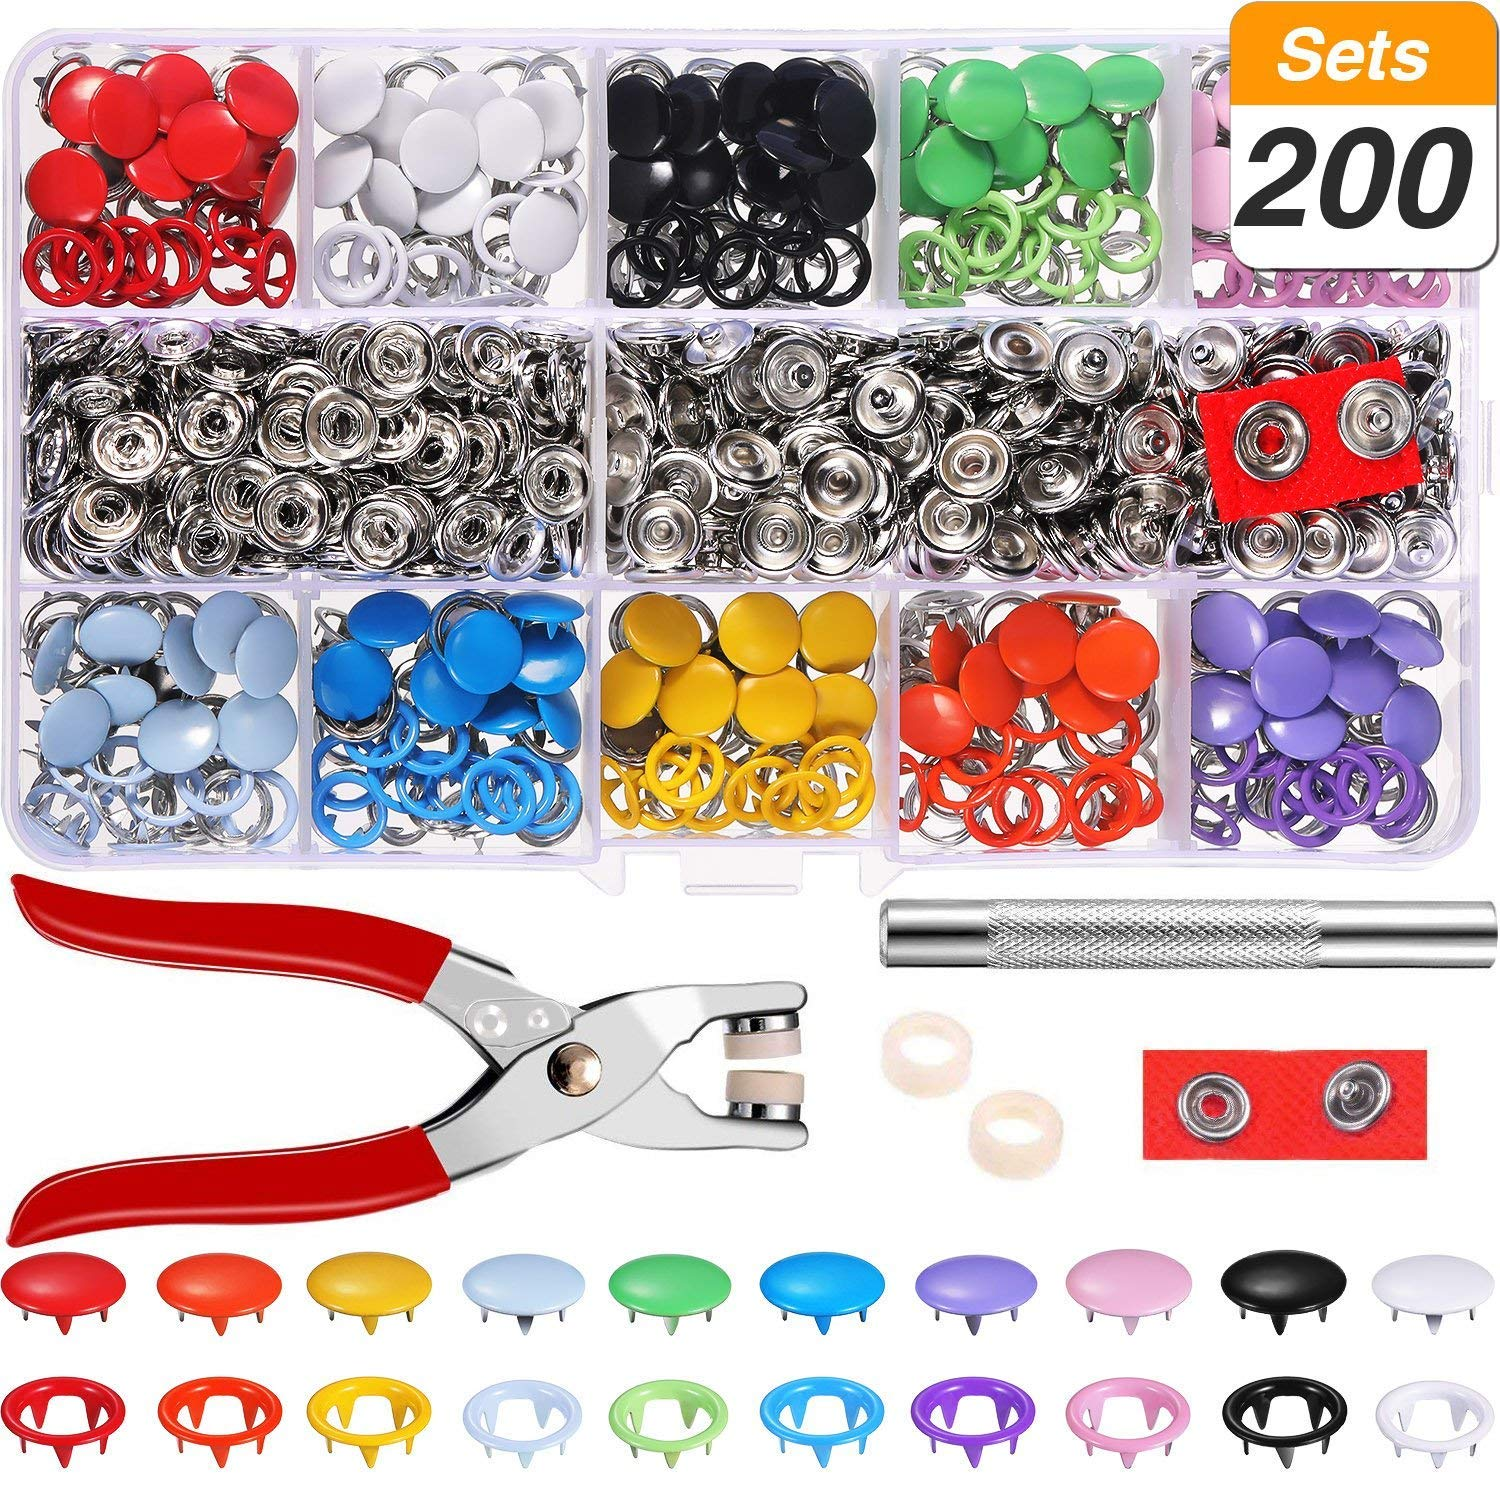 10 Color 100 Sets Five-prong Buckle Button And Hand Pressure Pliers Set Hollow Installation Tools Clothing Accessory DIY Tool